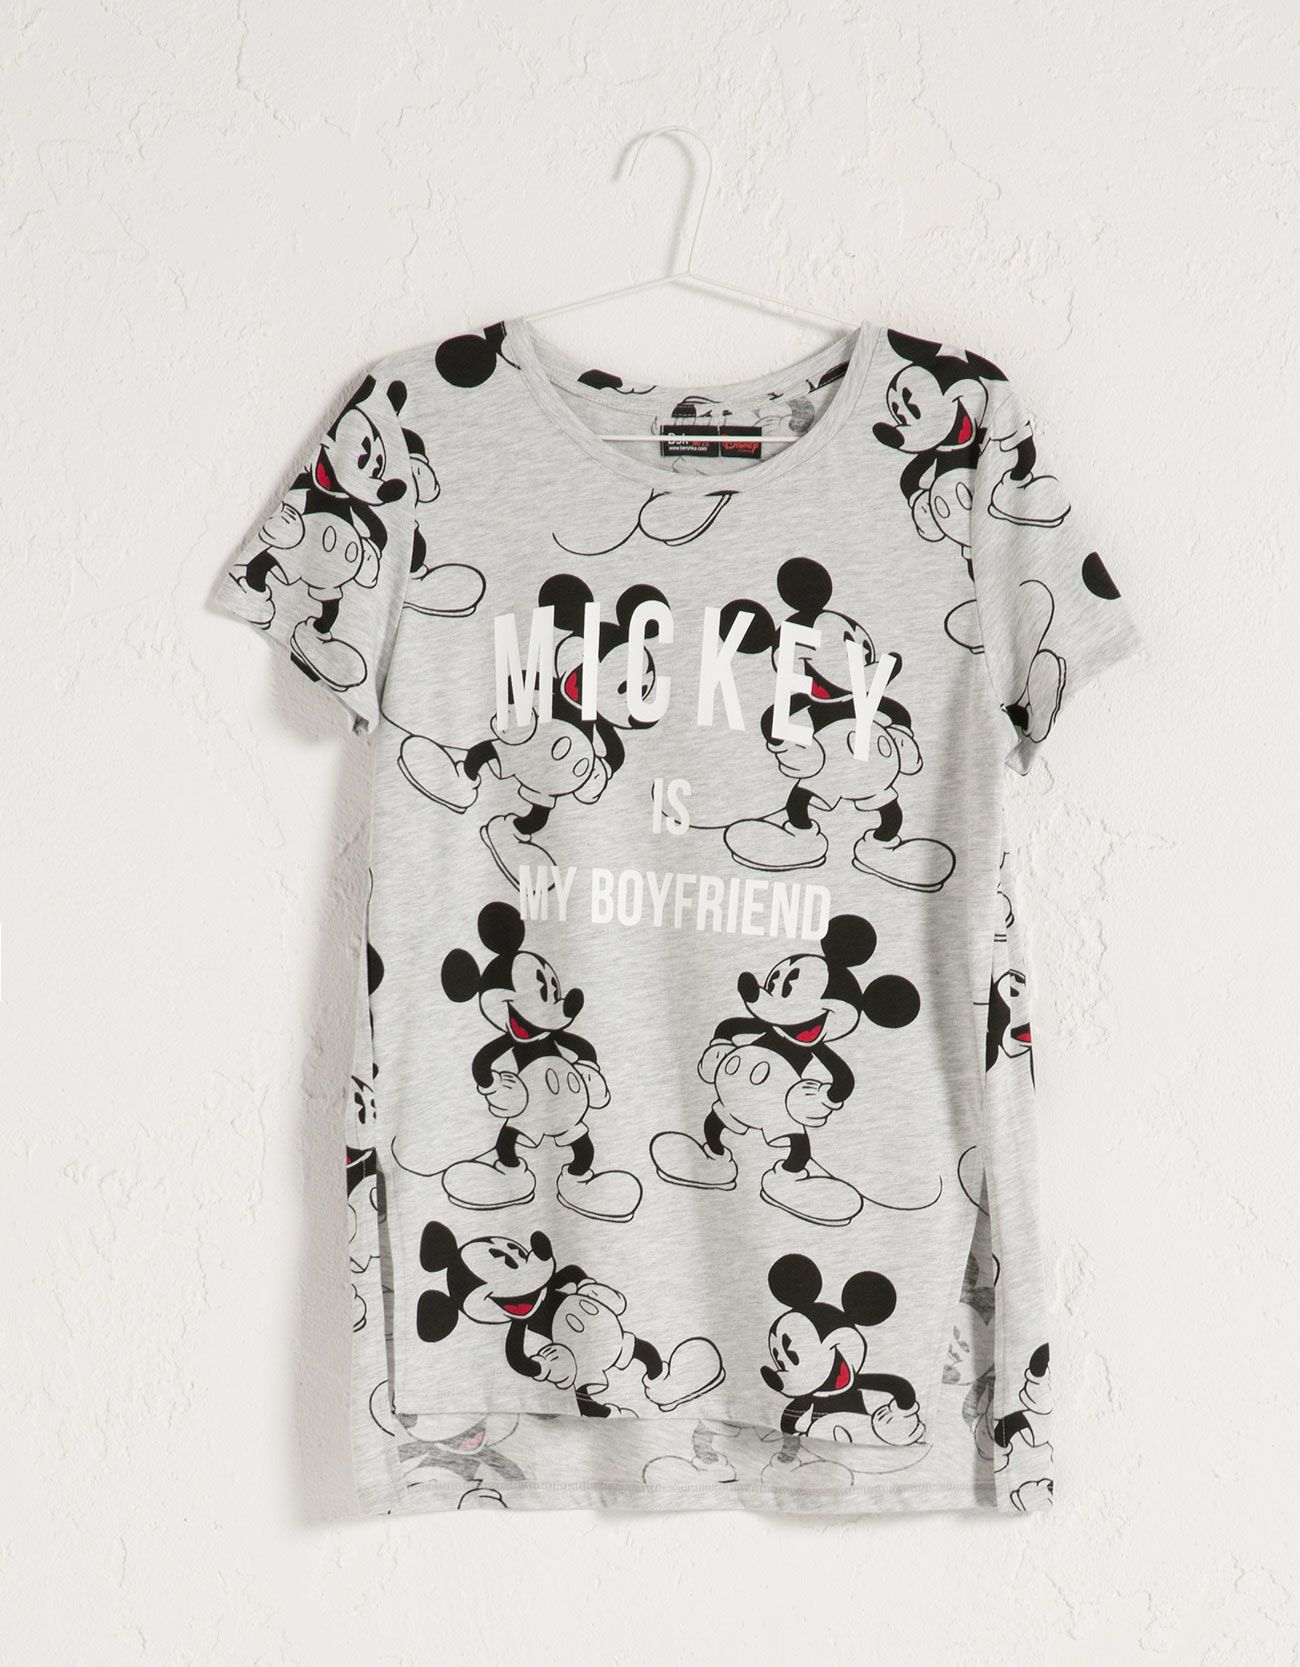 ceb7e155 T-shirt BSK imprimé all over Mickey Mouse. Découvrez cet article et  beaucoup plus sur Bershka, nouveaux produits chaque semaine.